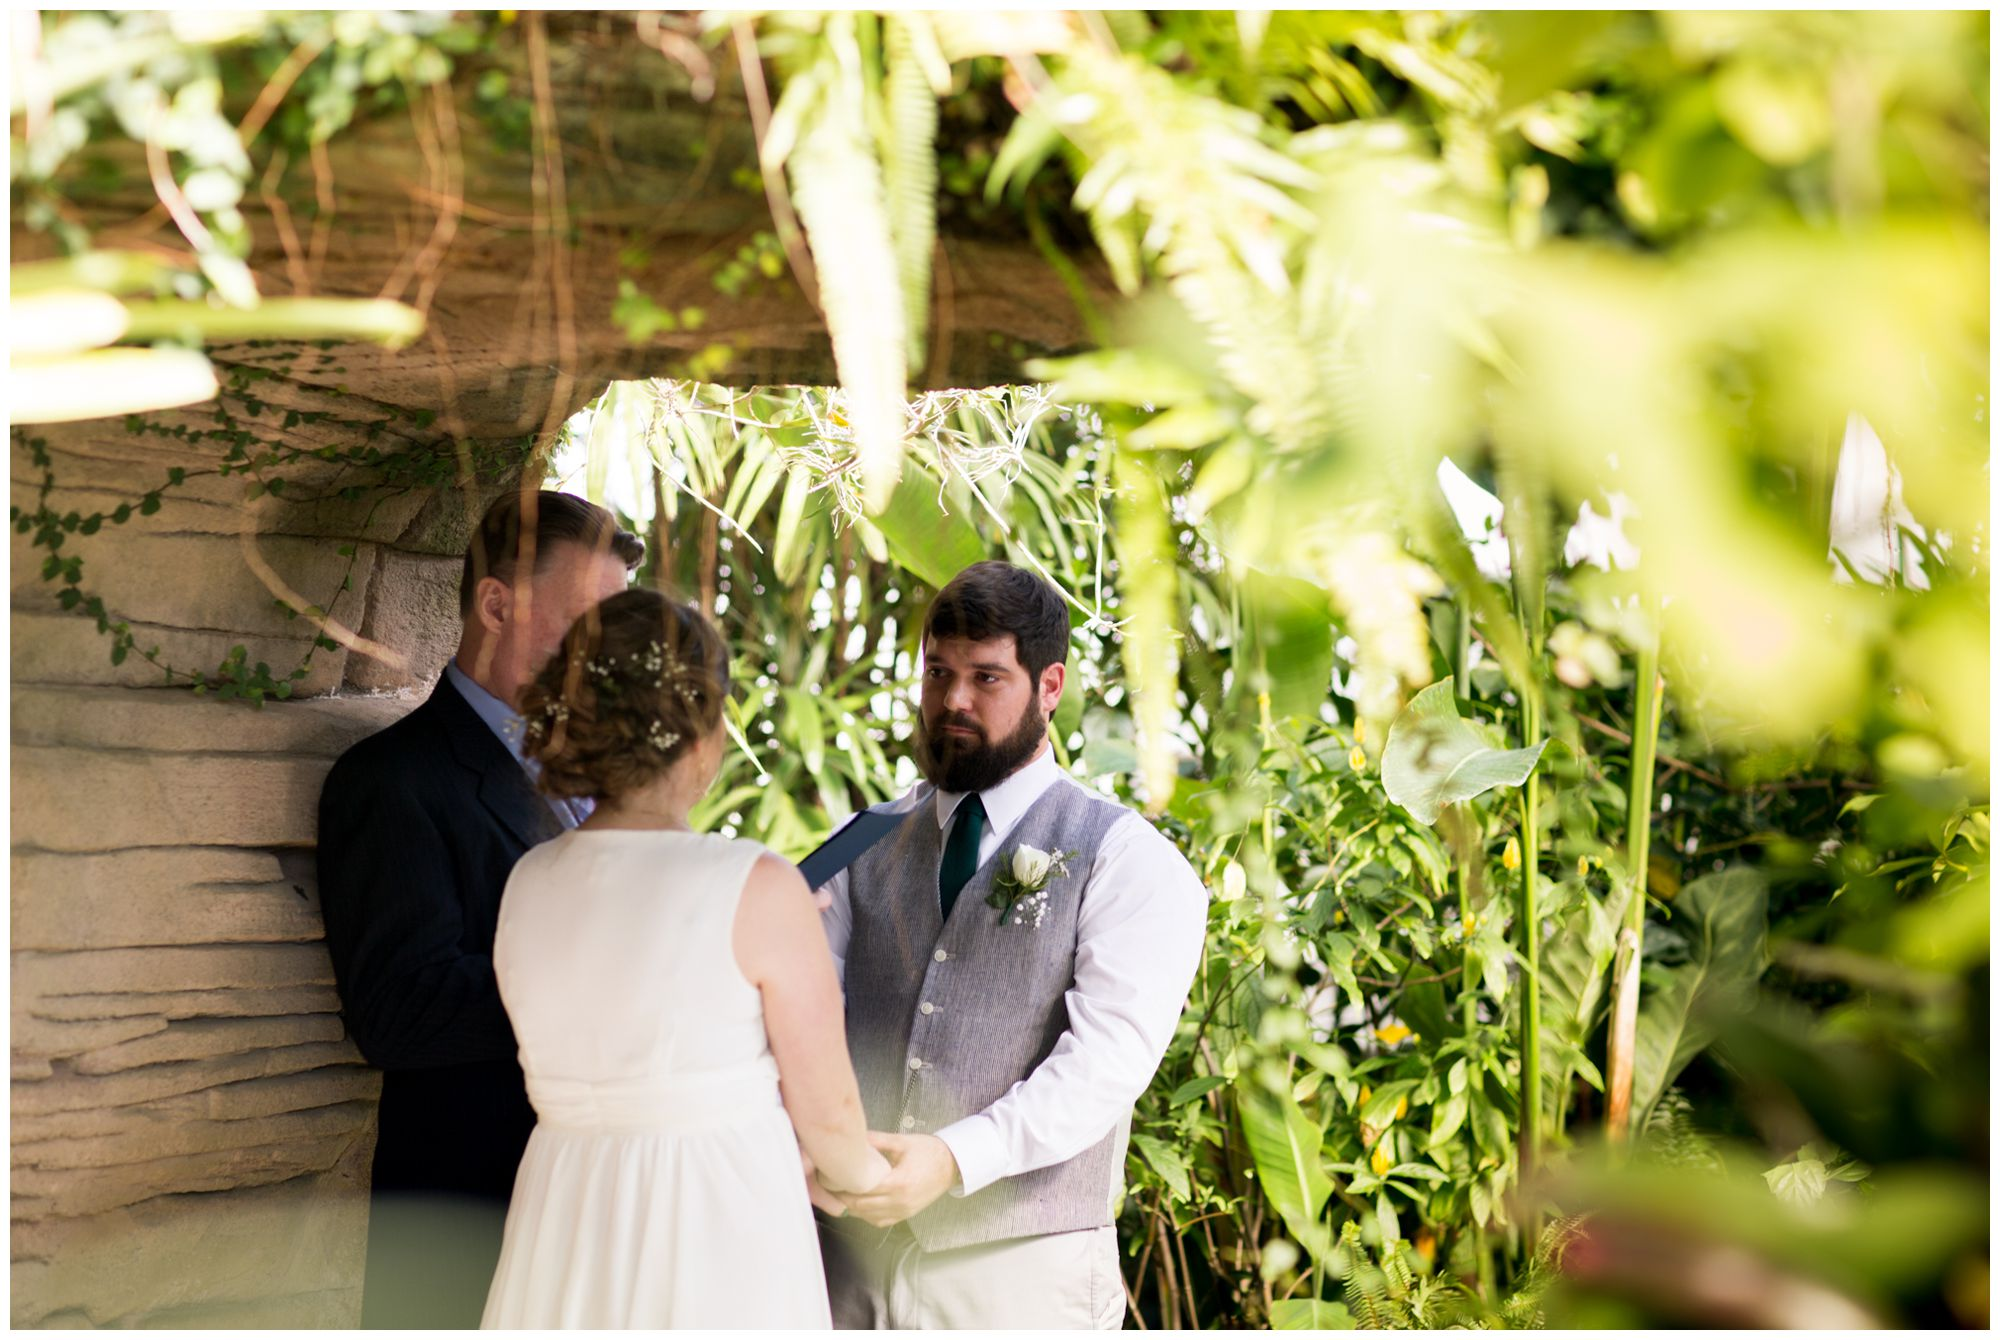 intimate wedding ceremony inside Garfield Park Conservatory in Indianapolis